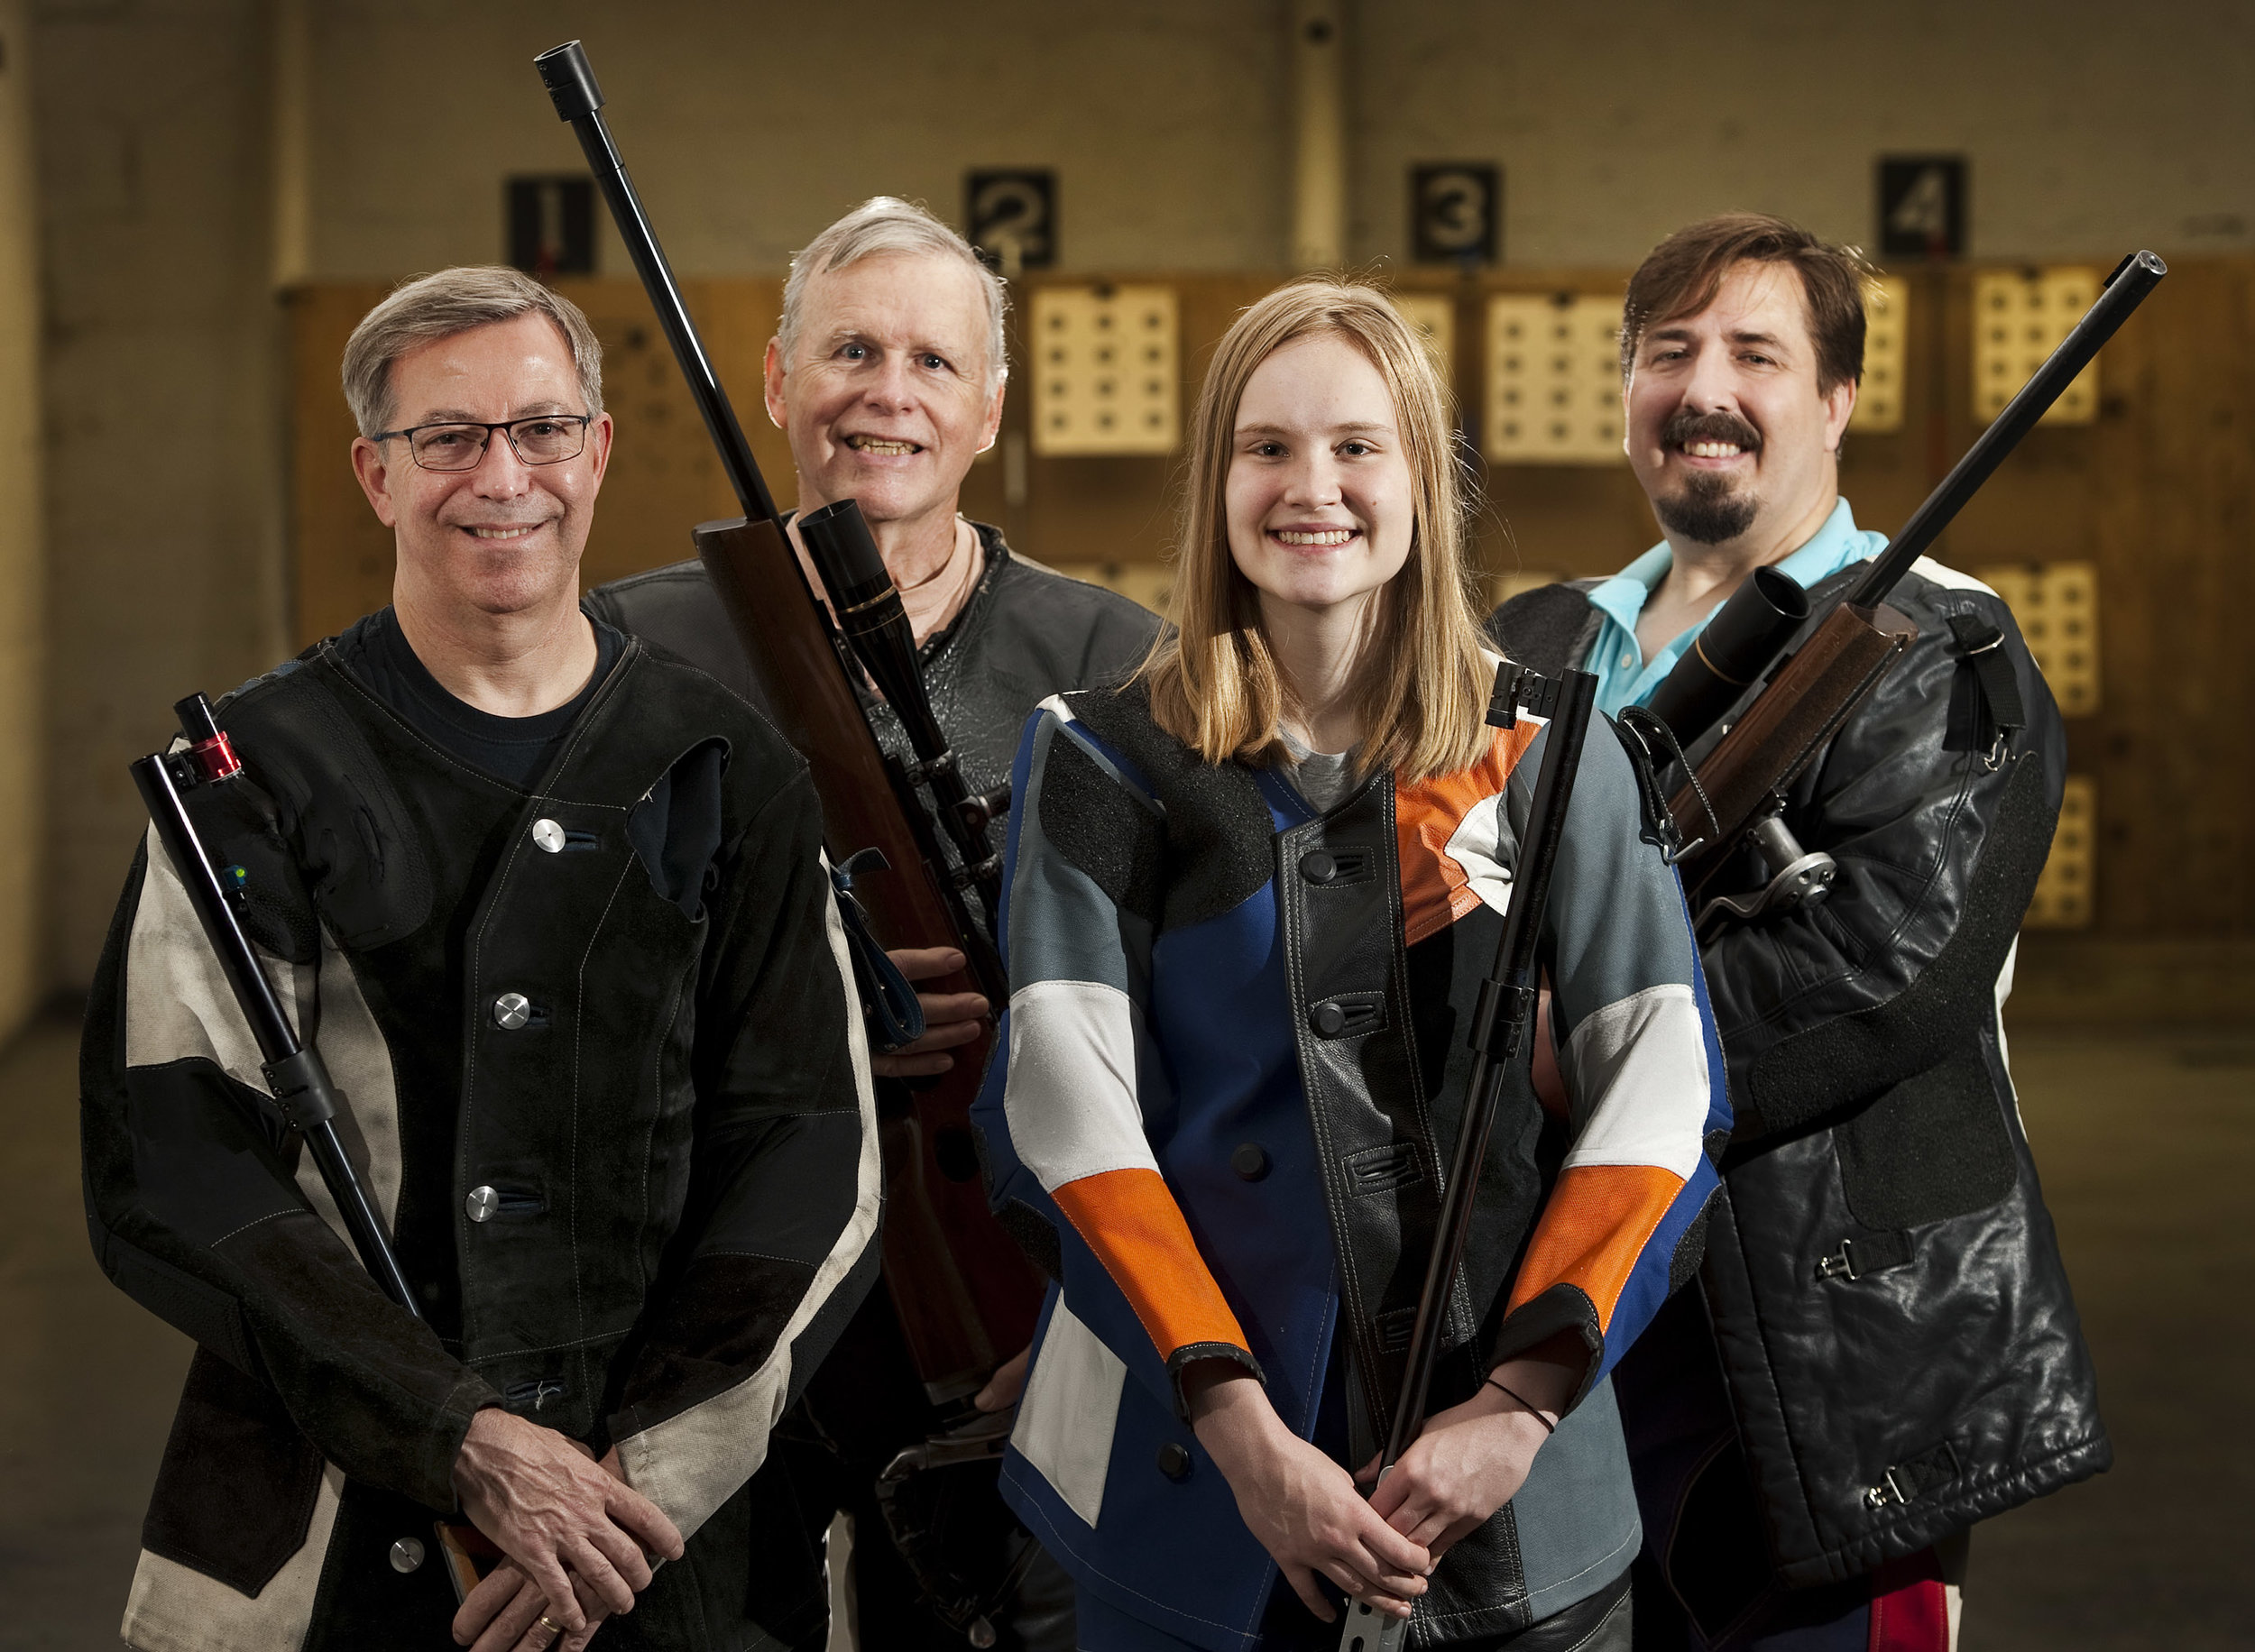 Members of the Dormont-Mt. Lebanon Sportsmen's Club rifle team from left to right, Tom Benedict of Sewickley, John Funk of Murrysville, Cassidy Fairman of Indiana and Dean Trew of Bentleyville pose for a portrait on Saturday, July 9, 2016. The team recently won a national title in indoor smallbore rifle shooting.